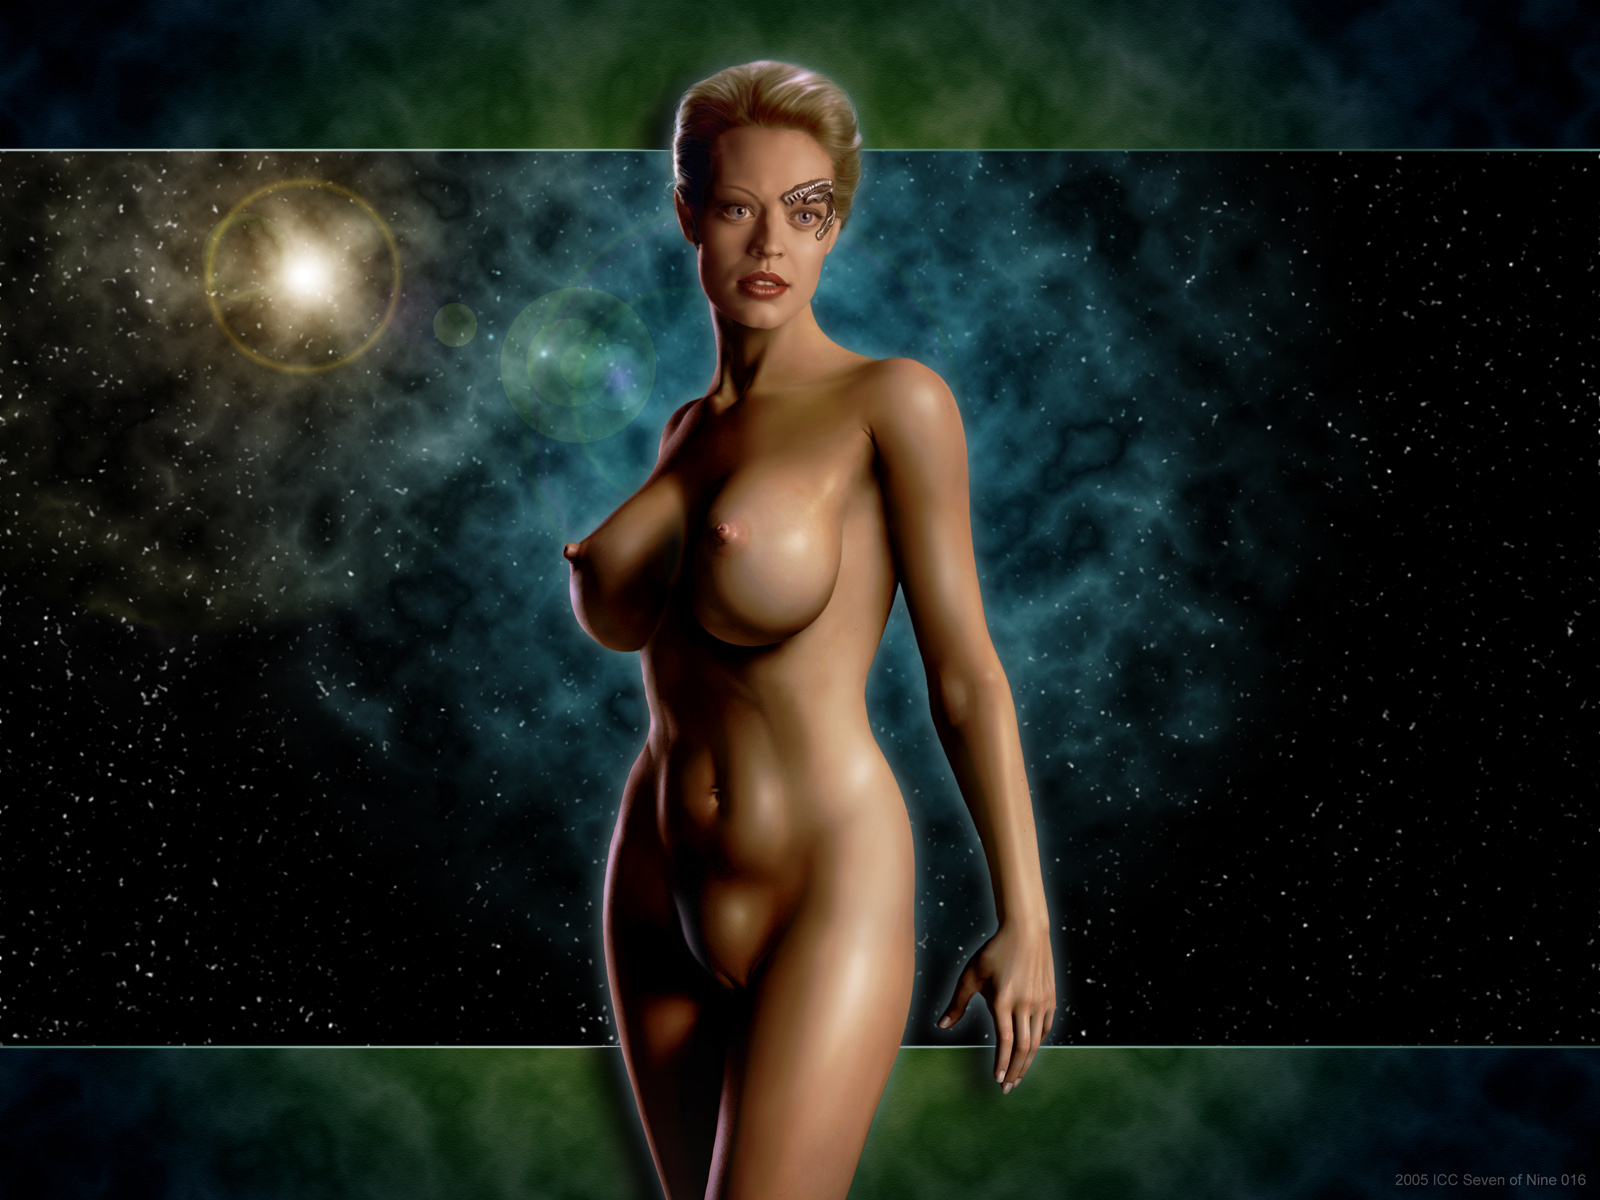 Congratulate, seems seven of nine sex shame!